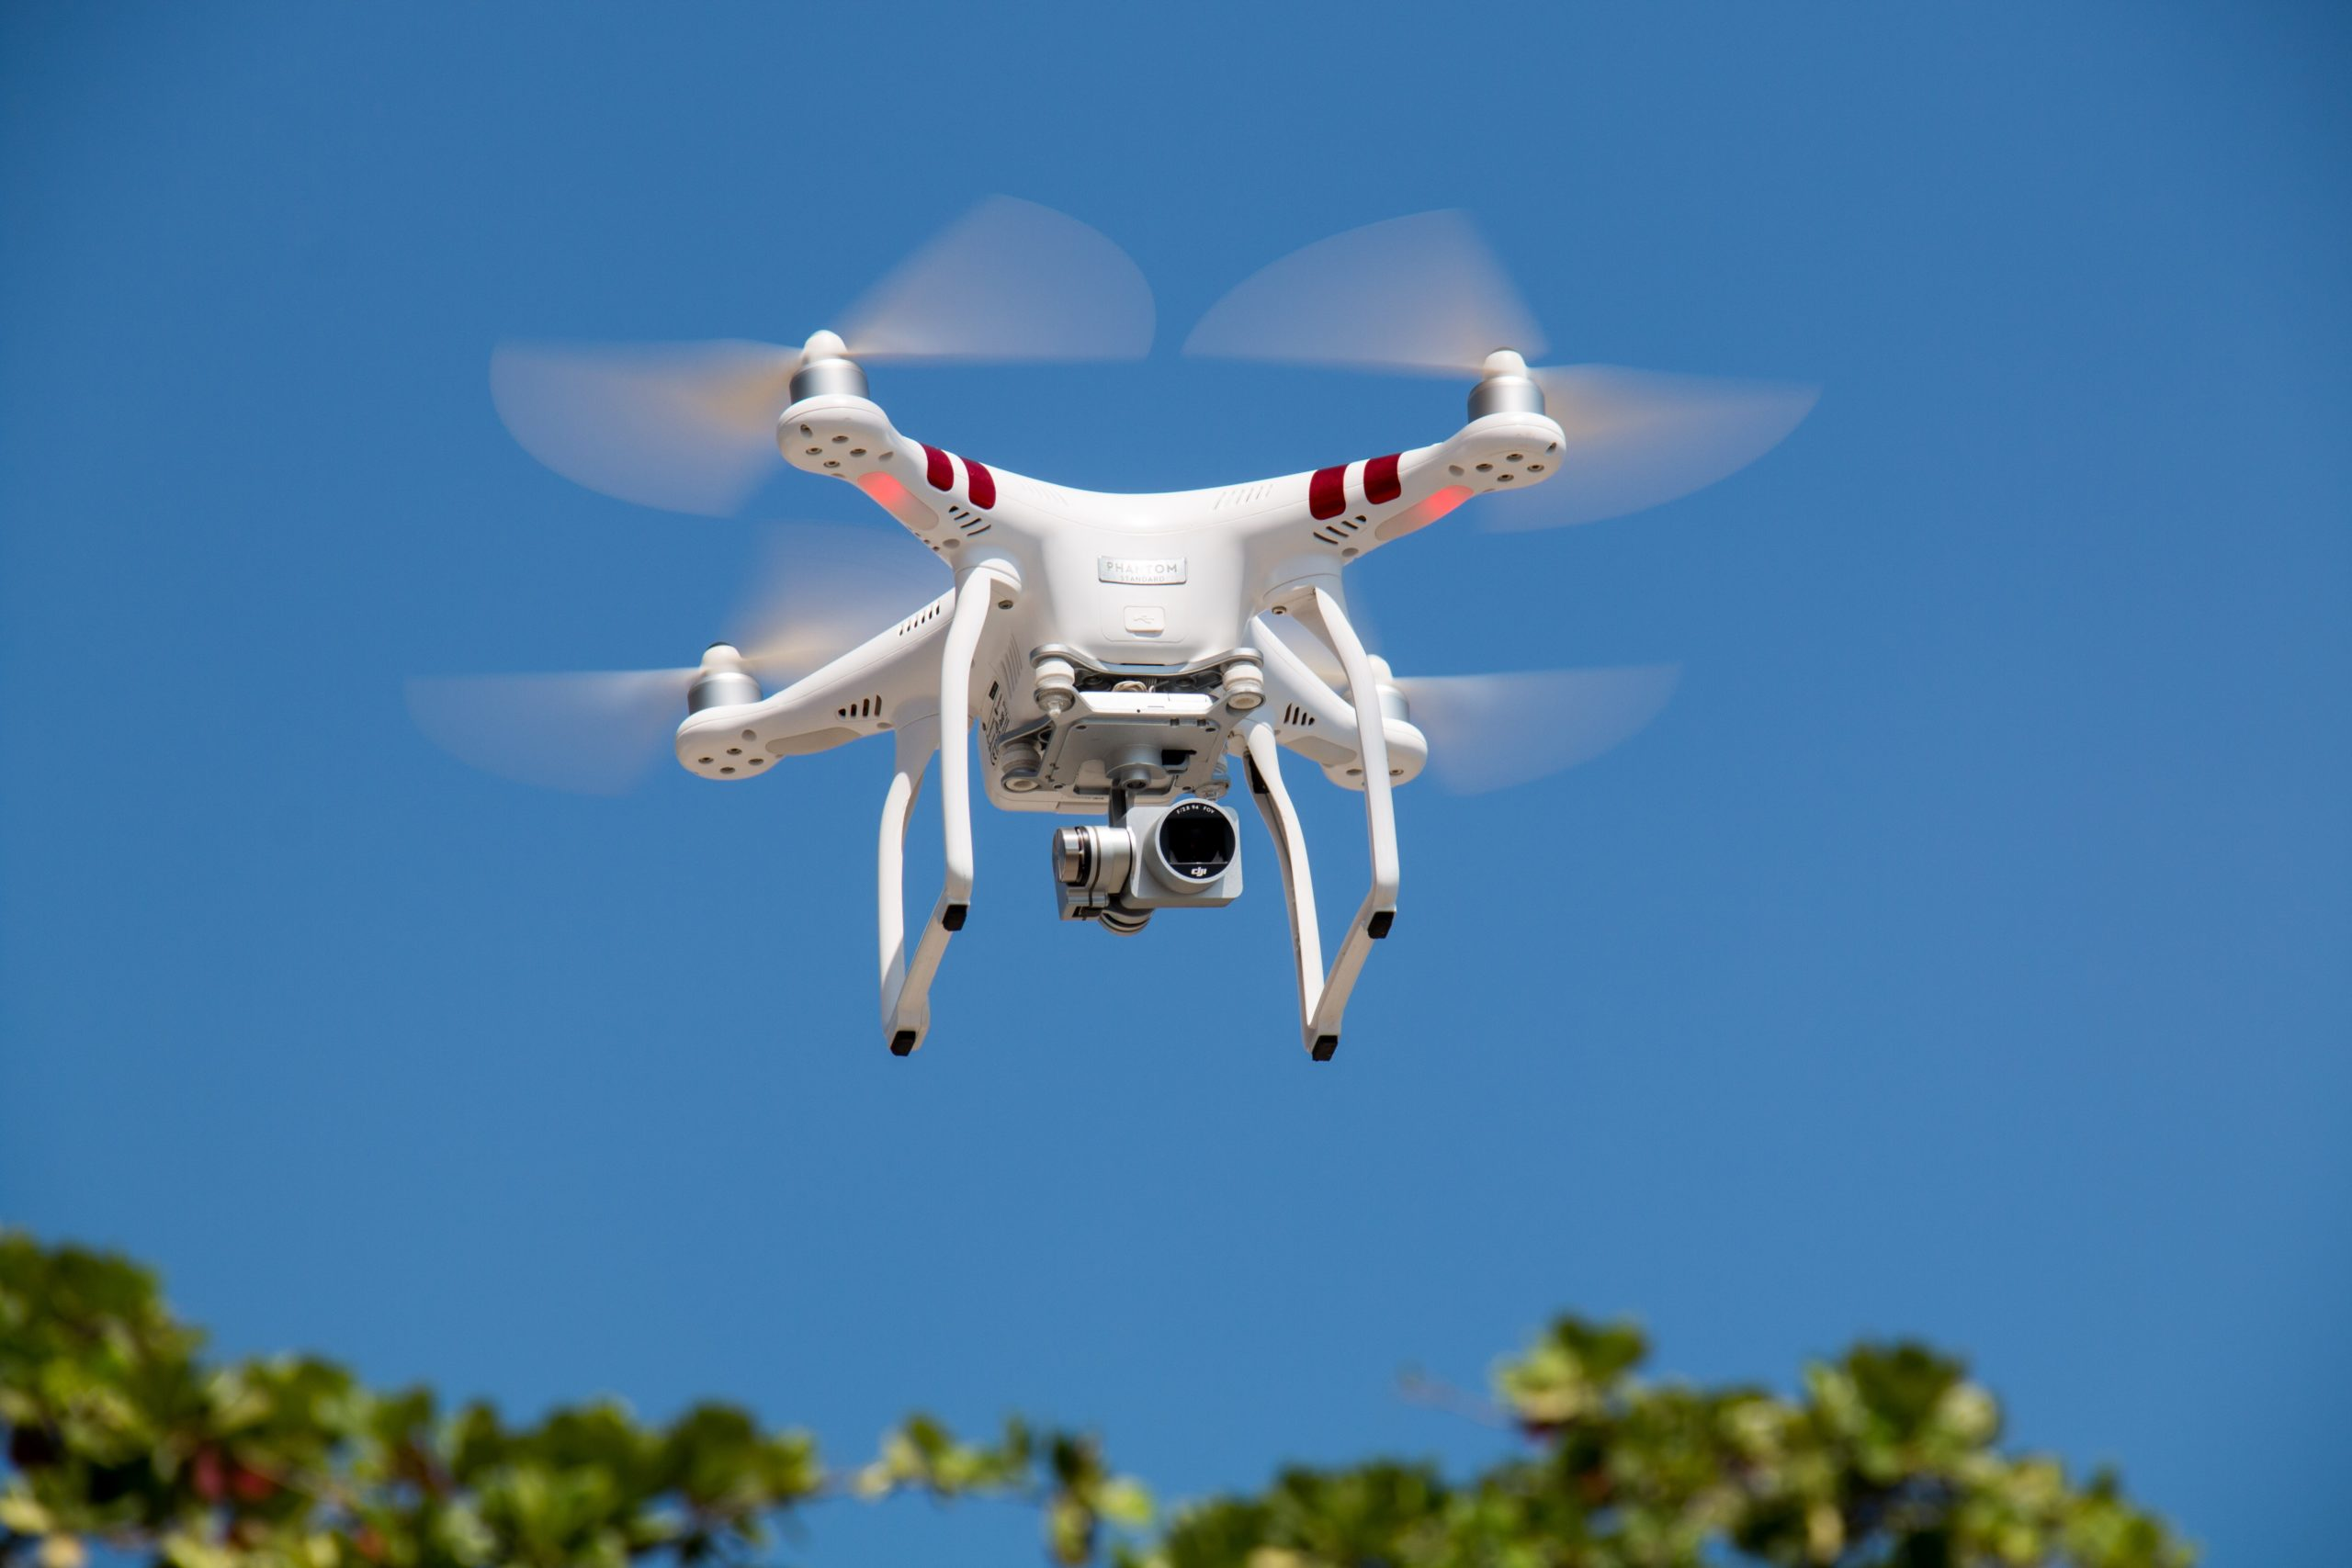 best drone under 50 https://www.pexels.com/photo/drone-flying-against-blue-sky-336232/